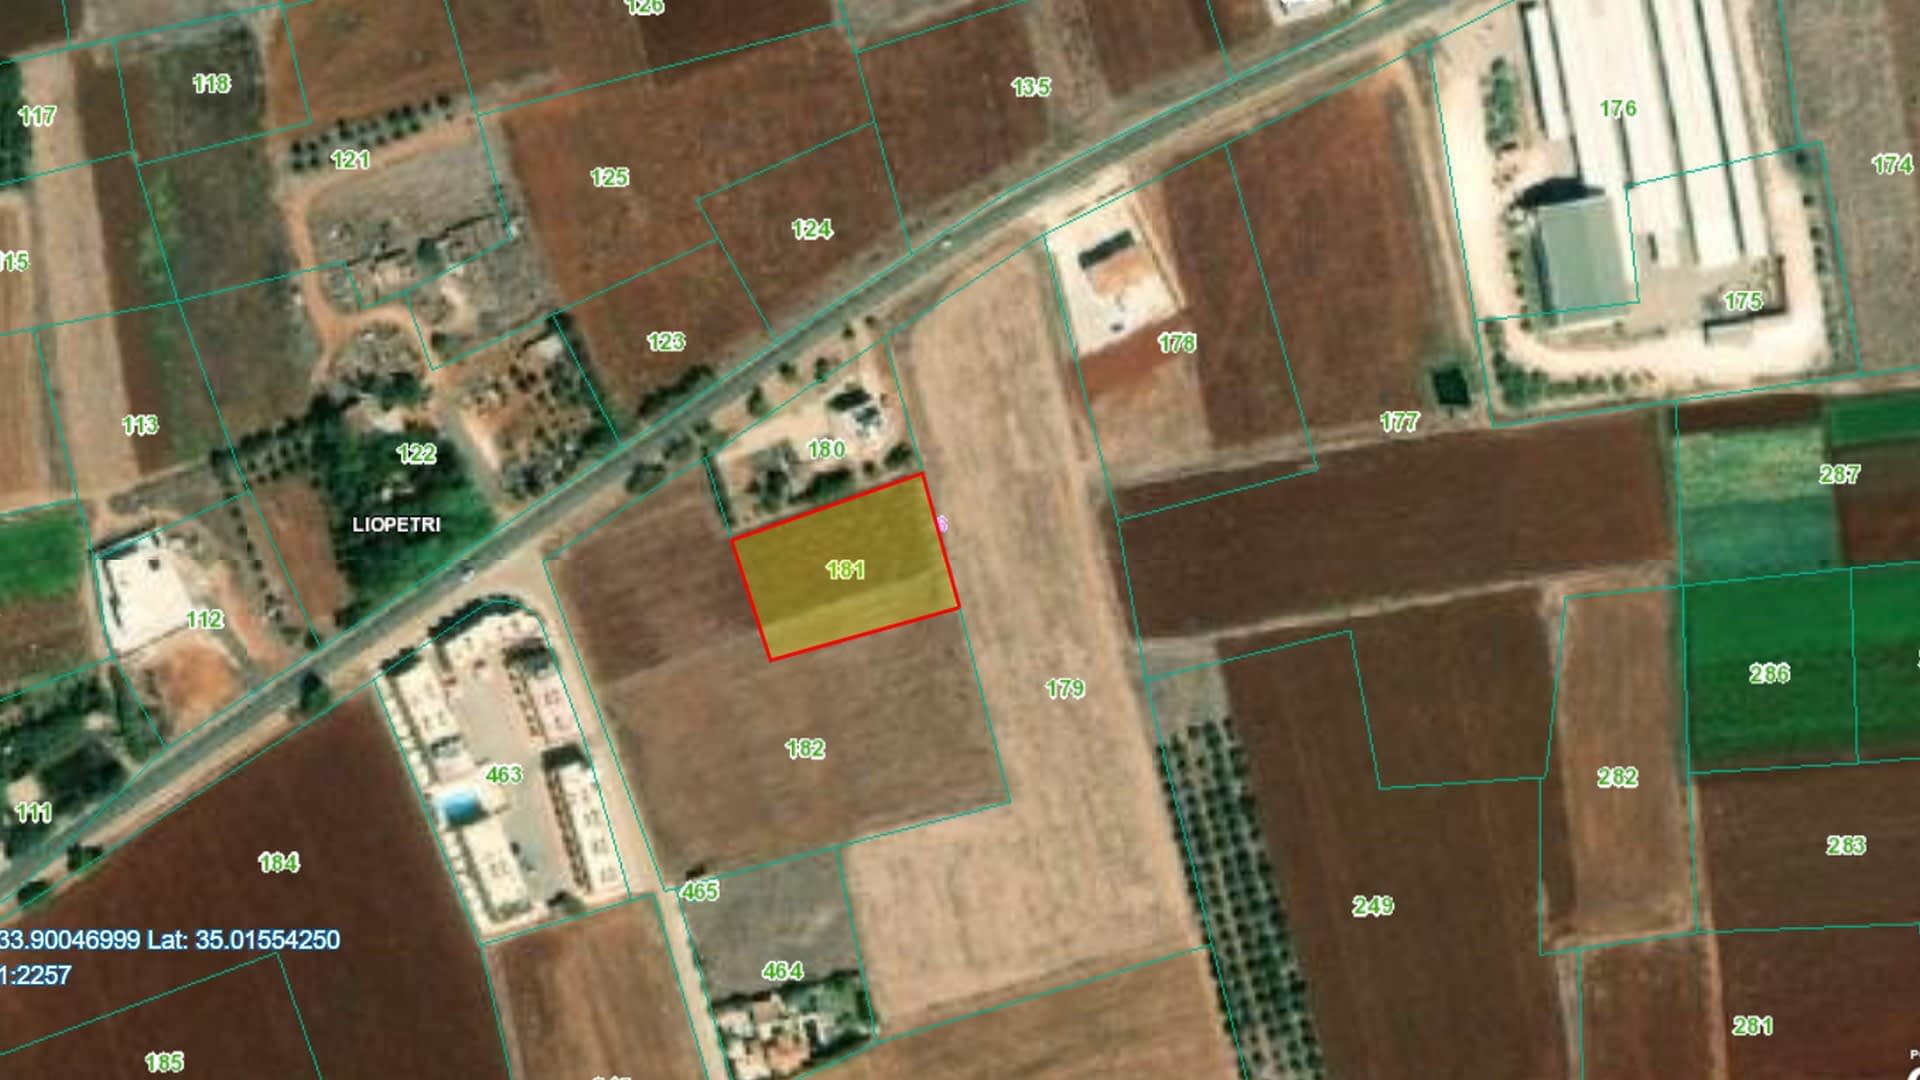 Residential Land for Sale Outskirts of Liopetri Village